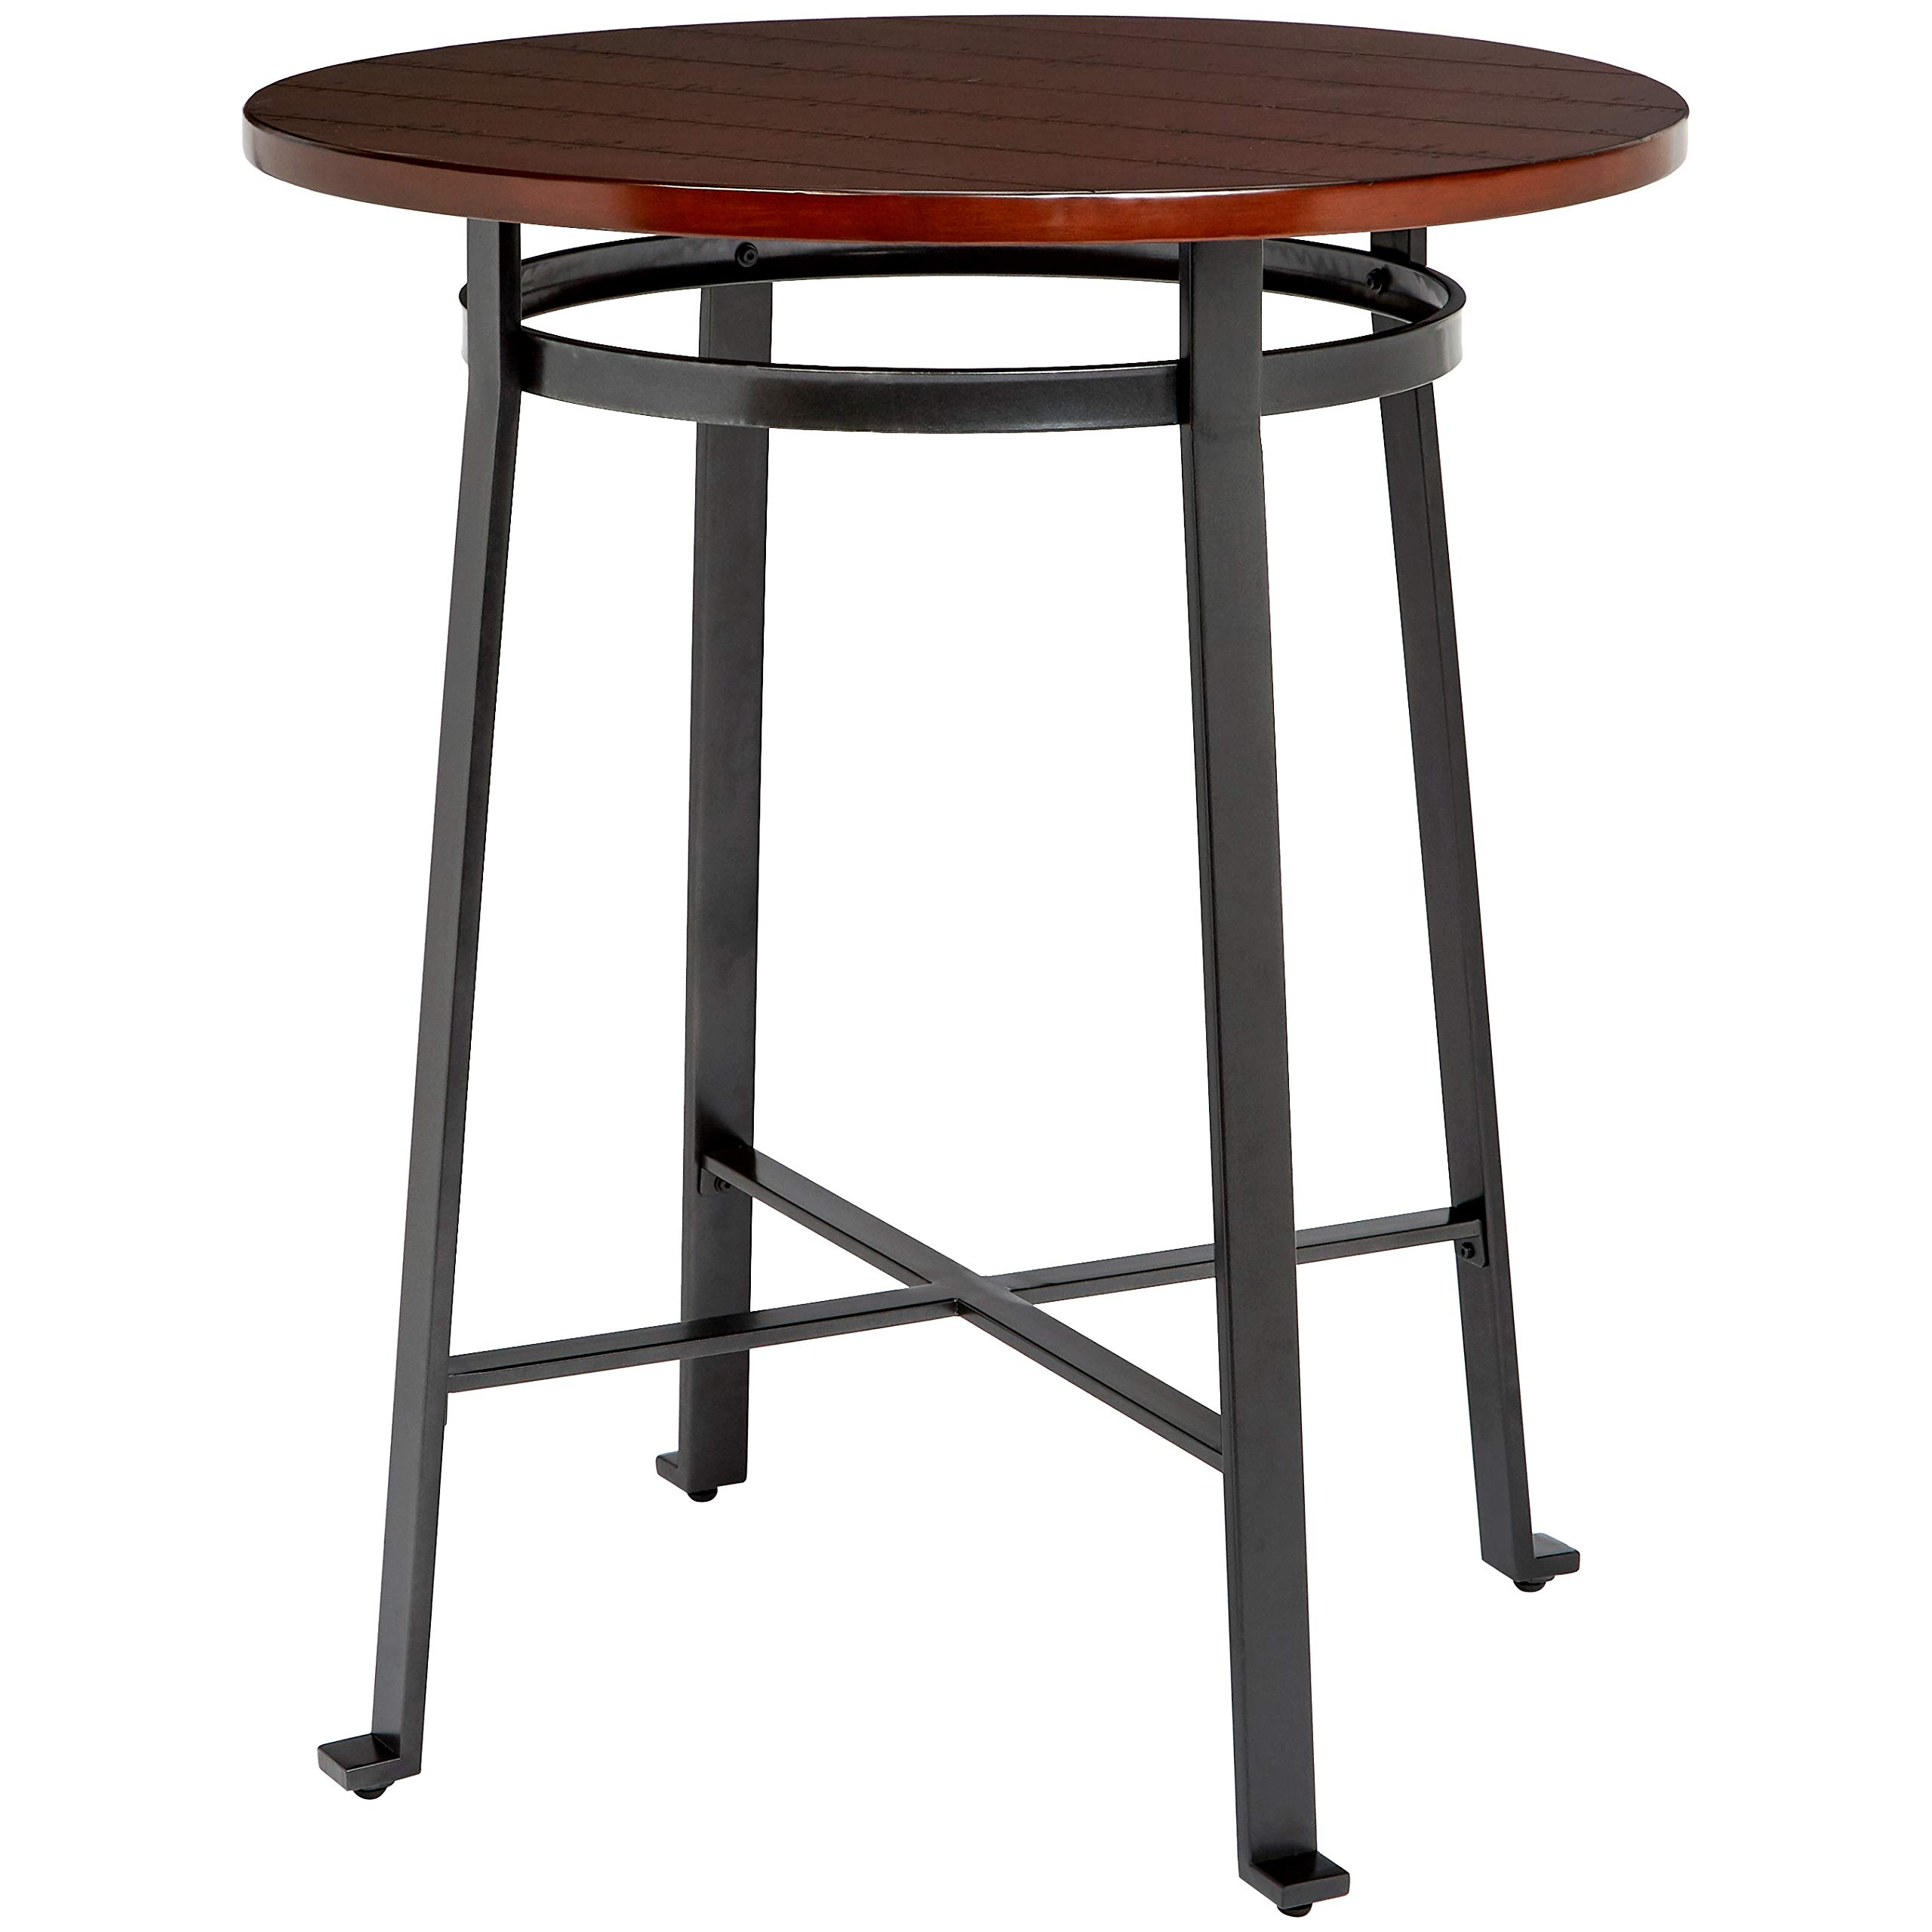 Ball & Cast Bar Table - 42 Inch, Rustic Brown by Ball & Cast